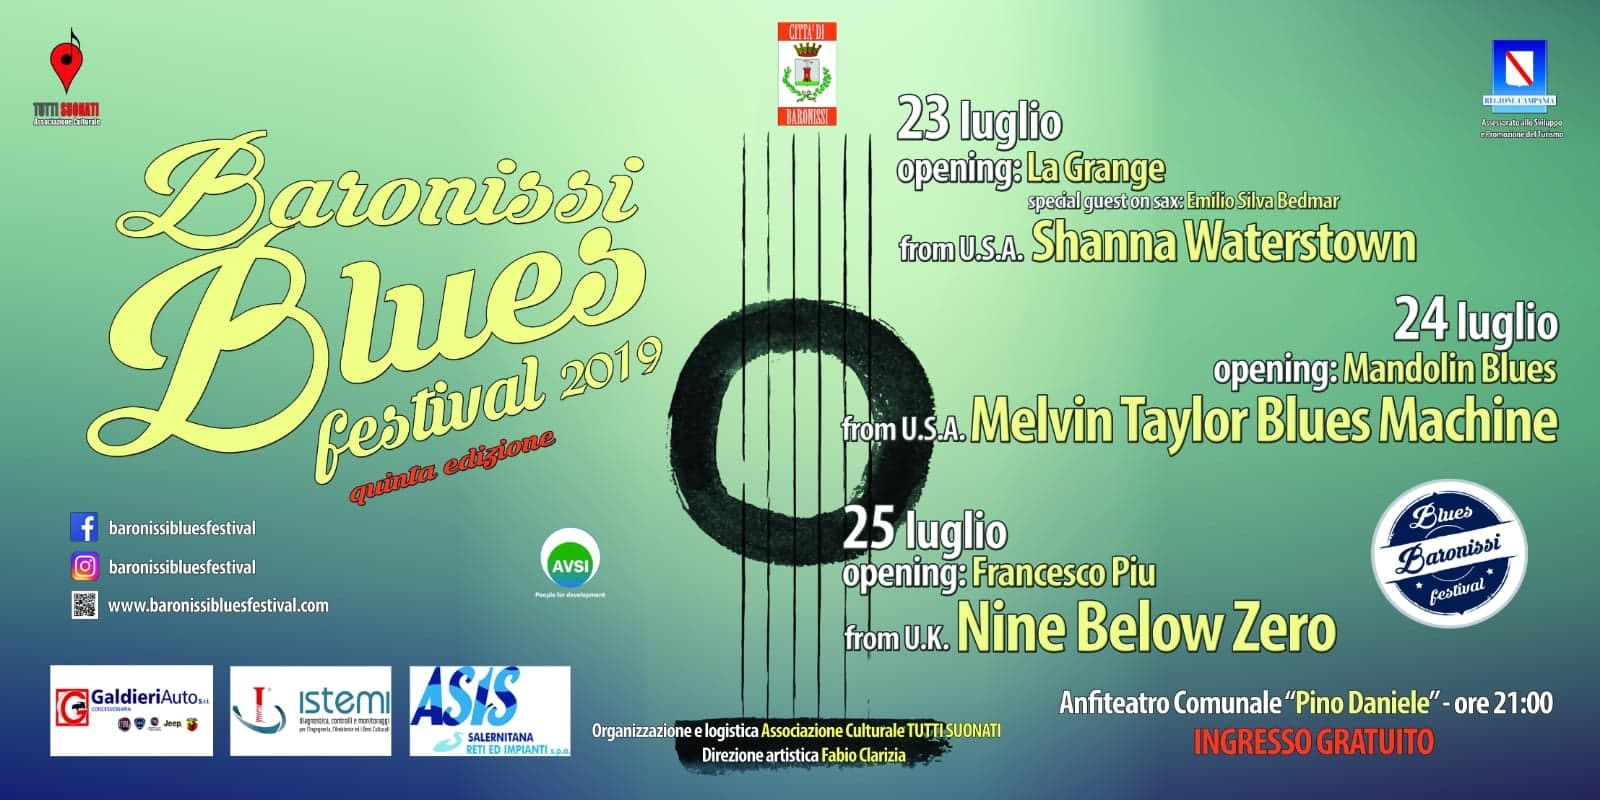 Baronissi Blues Festival 2019